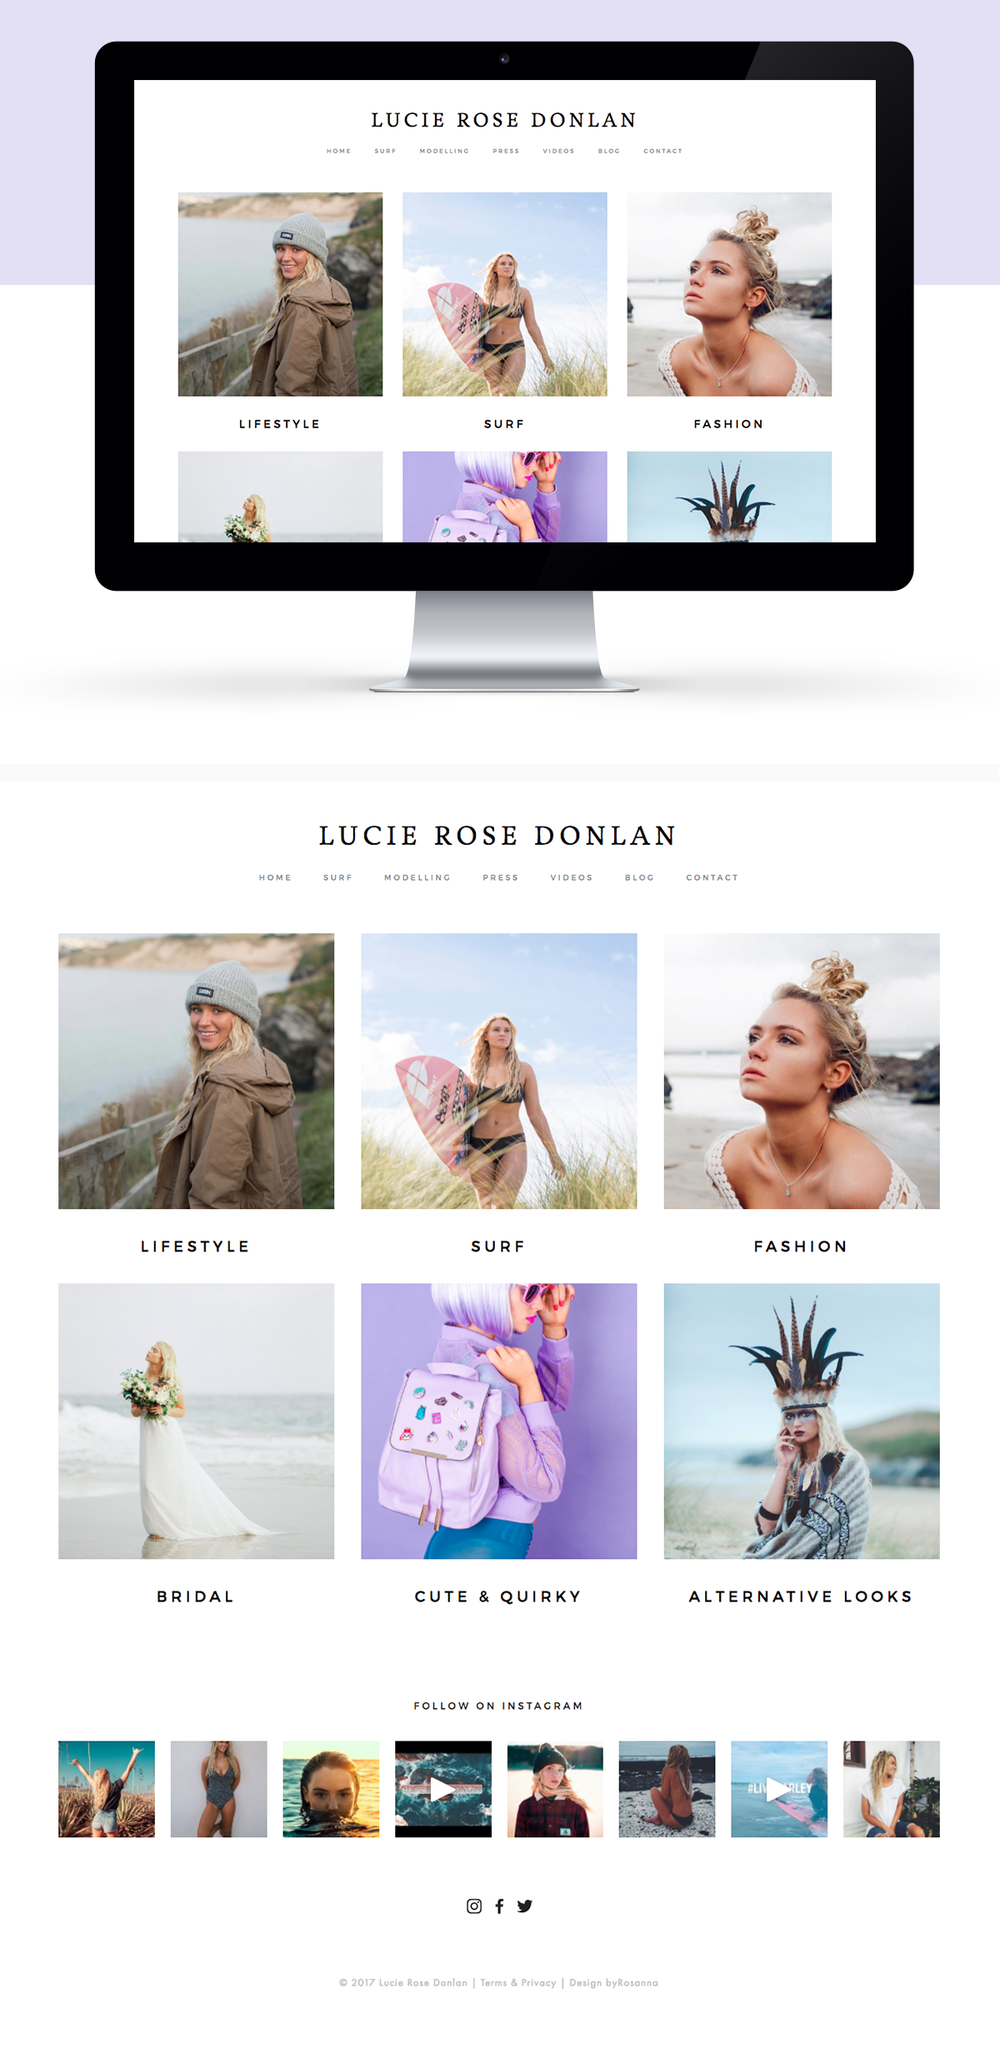 Lucie Rose Donlan website design